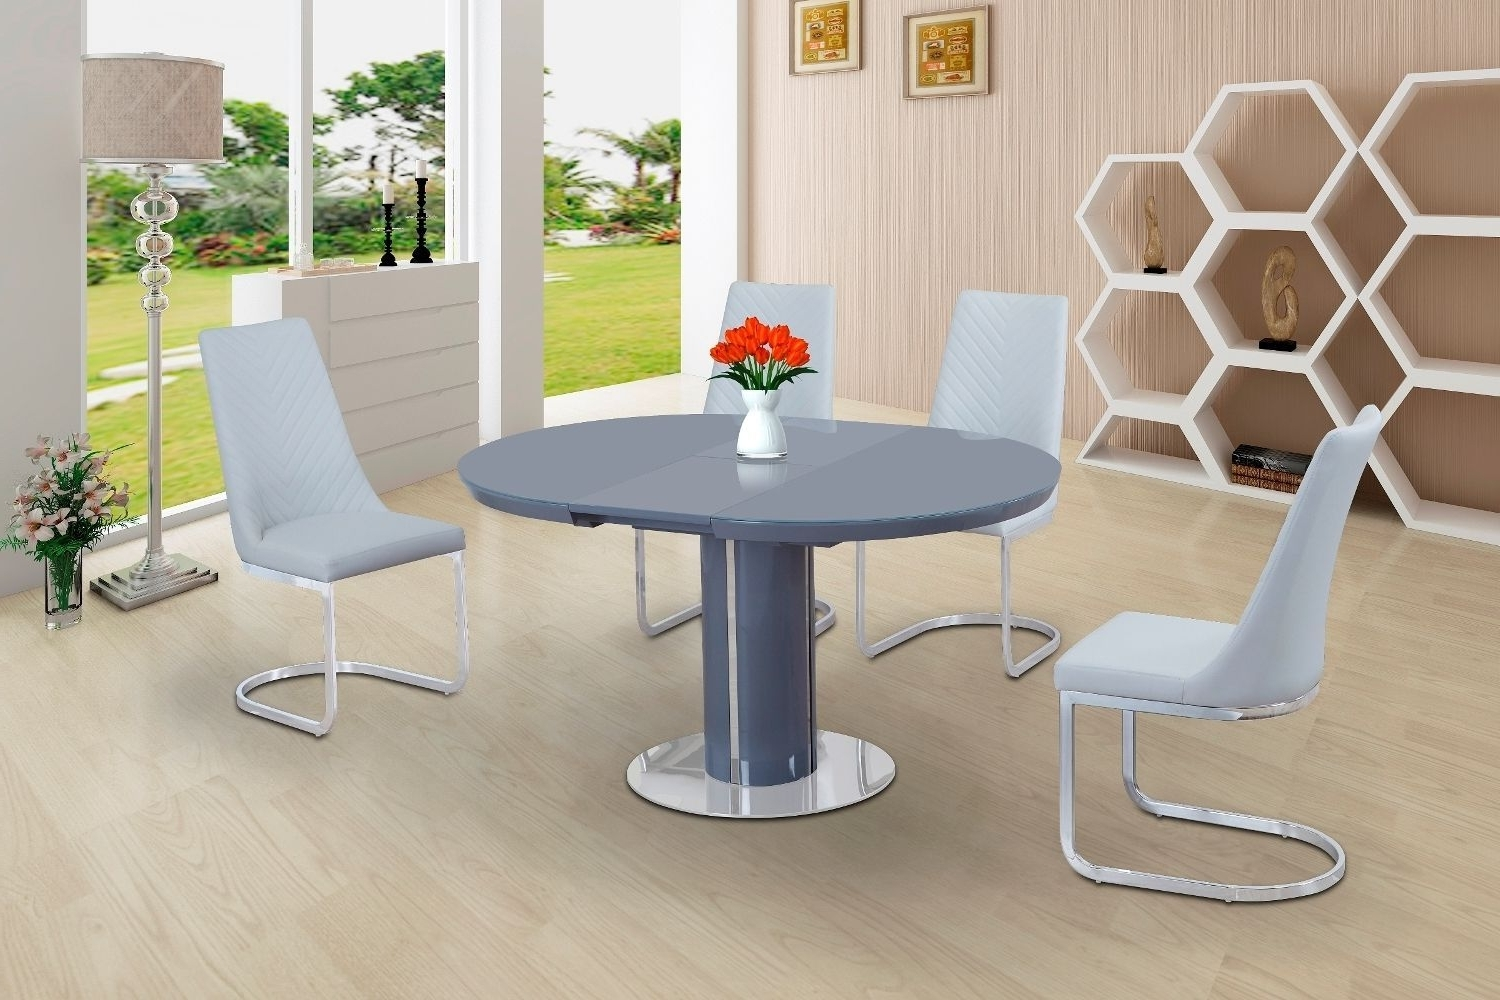 Eclipse Round Oval Gloss & Glass Extending 110 To 145 Cm Dining In Popular Gloss Dining Set (View 5 of 25)